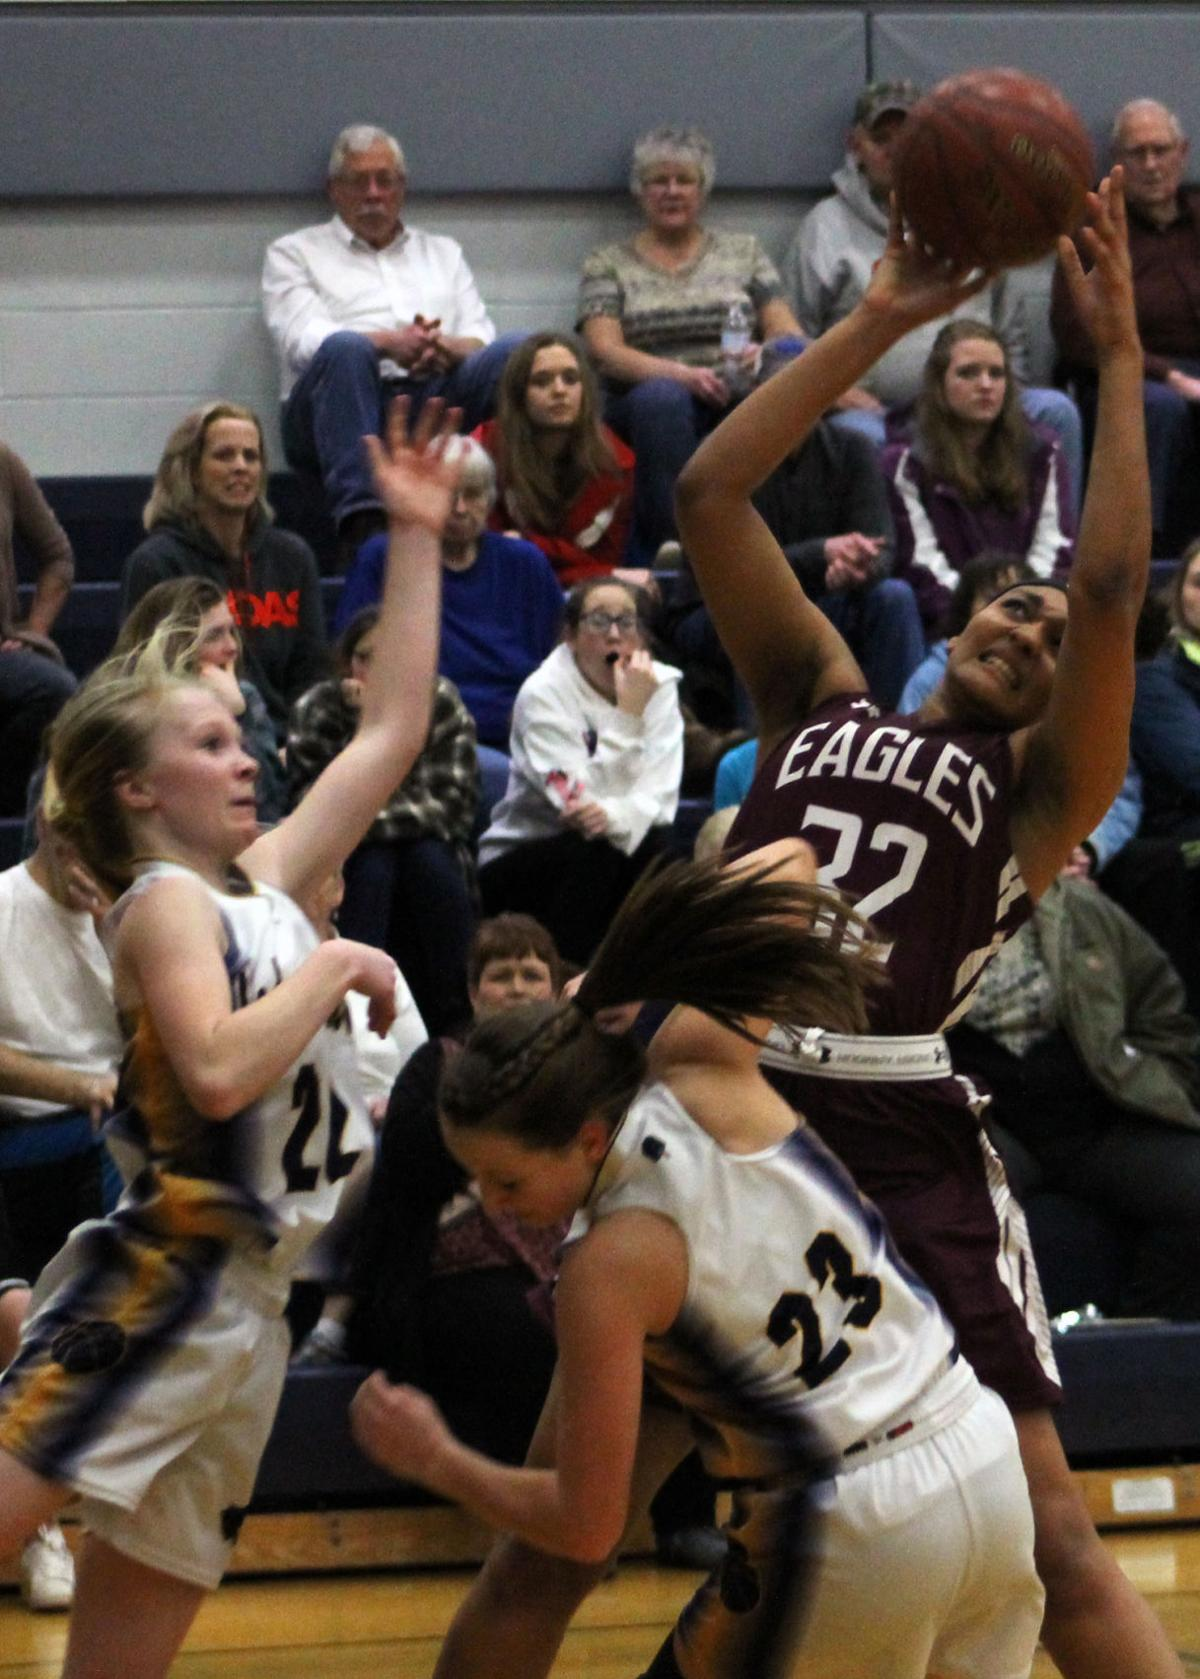 franklinville girls Franklinville — the franklinville girls basketball team learned just how important ally haskell is to its success.